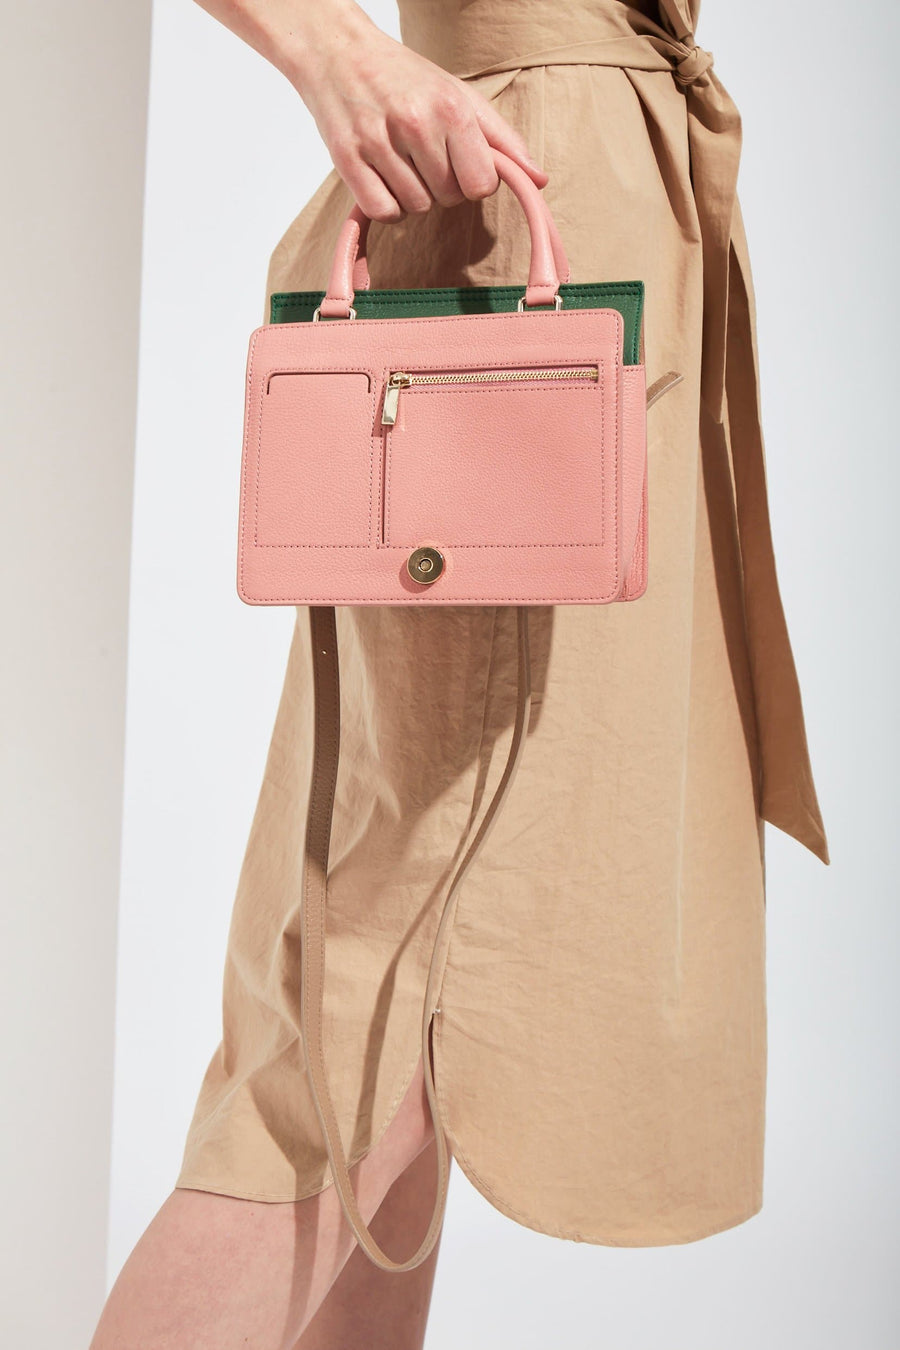 Mini Prism - Fern + Blush + Sand - OAD NEW YORK